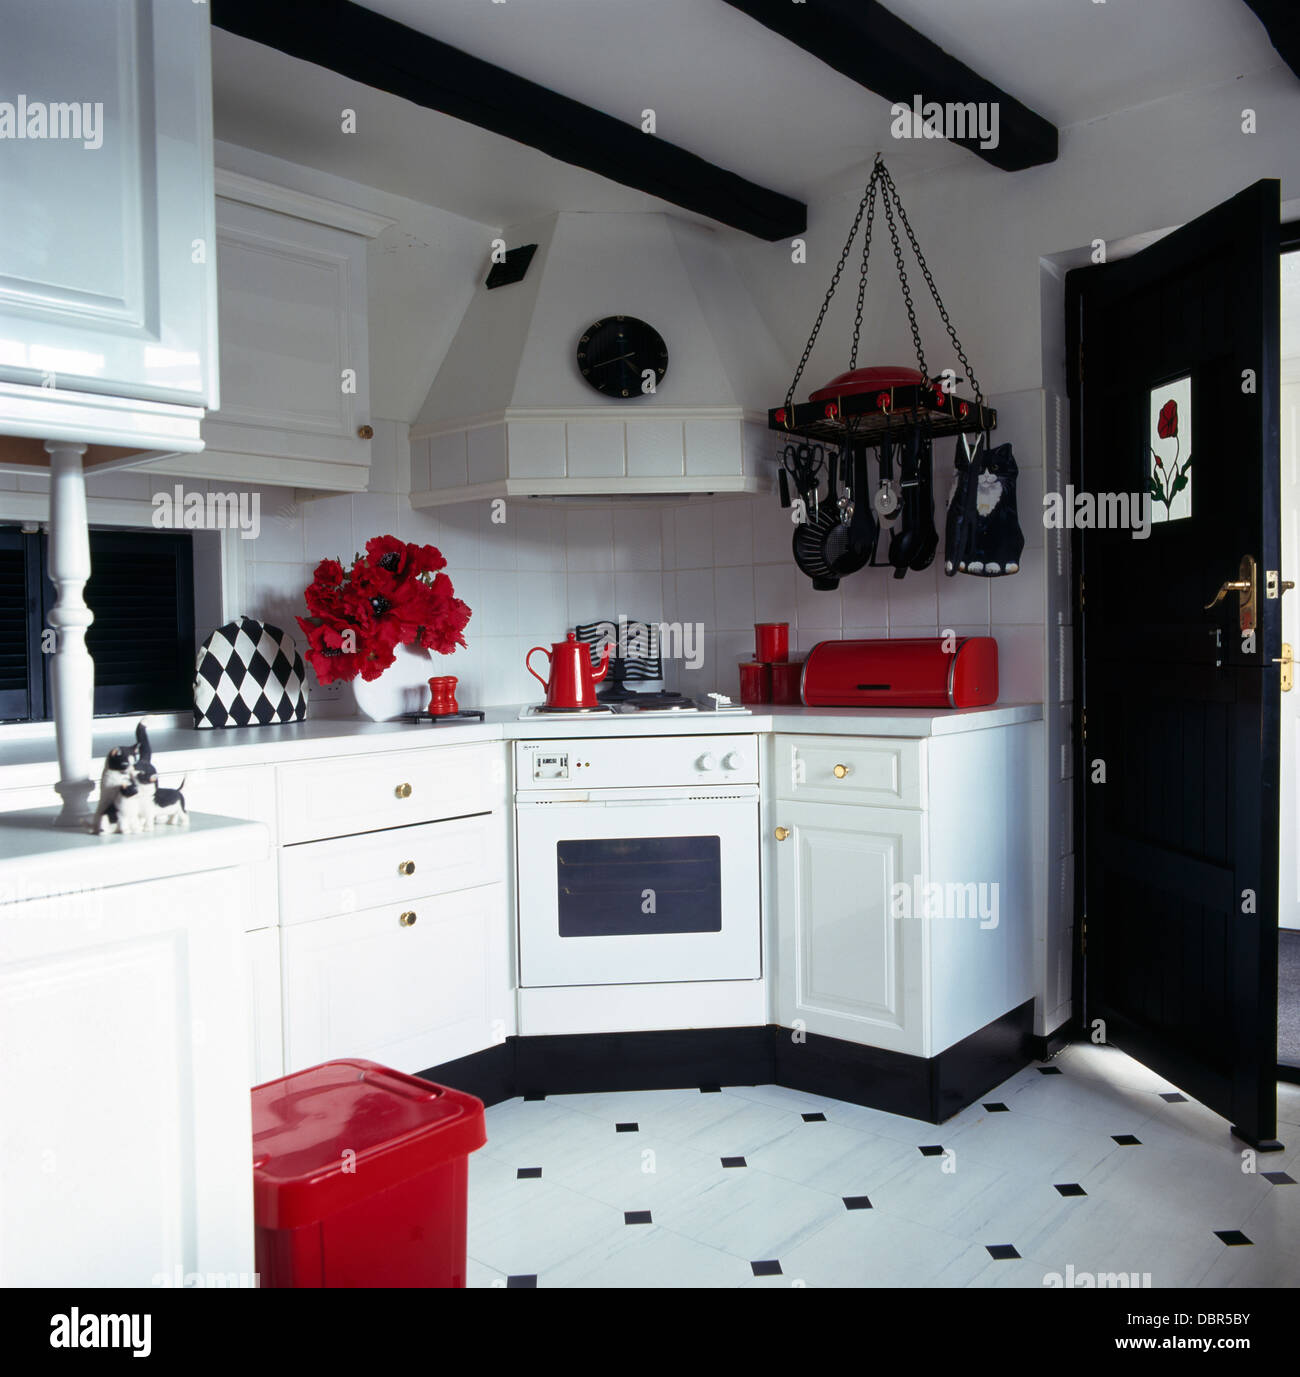 Black And White Kitchen Vinyl Flooring red accessories in black and white kitchen with black+white vinyl